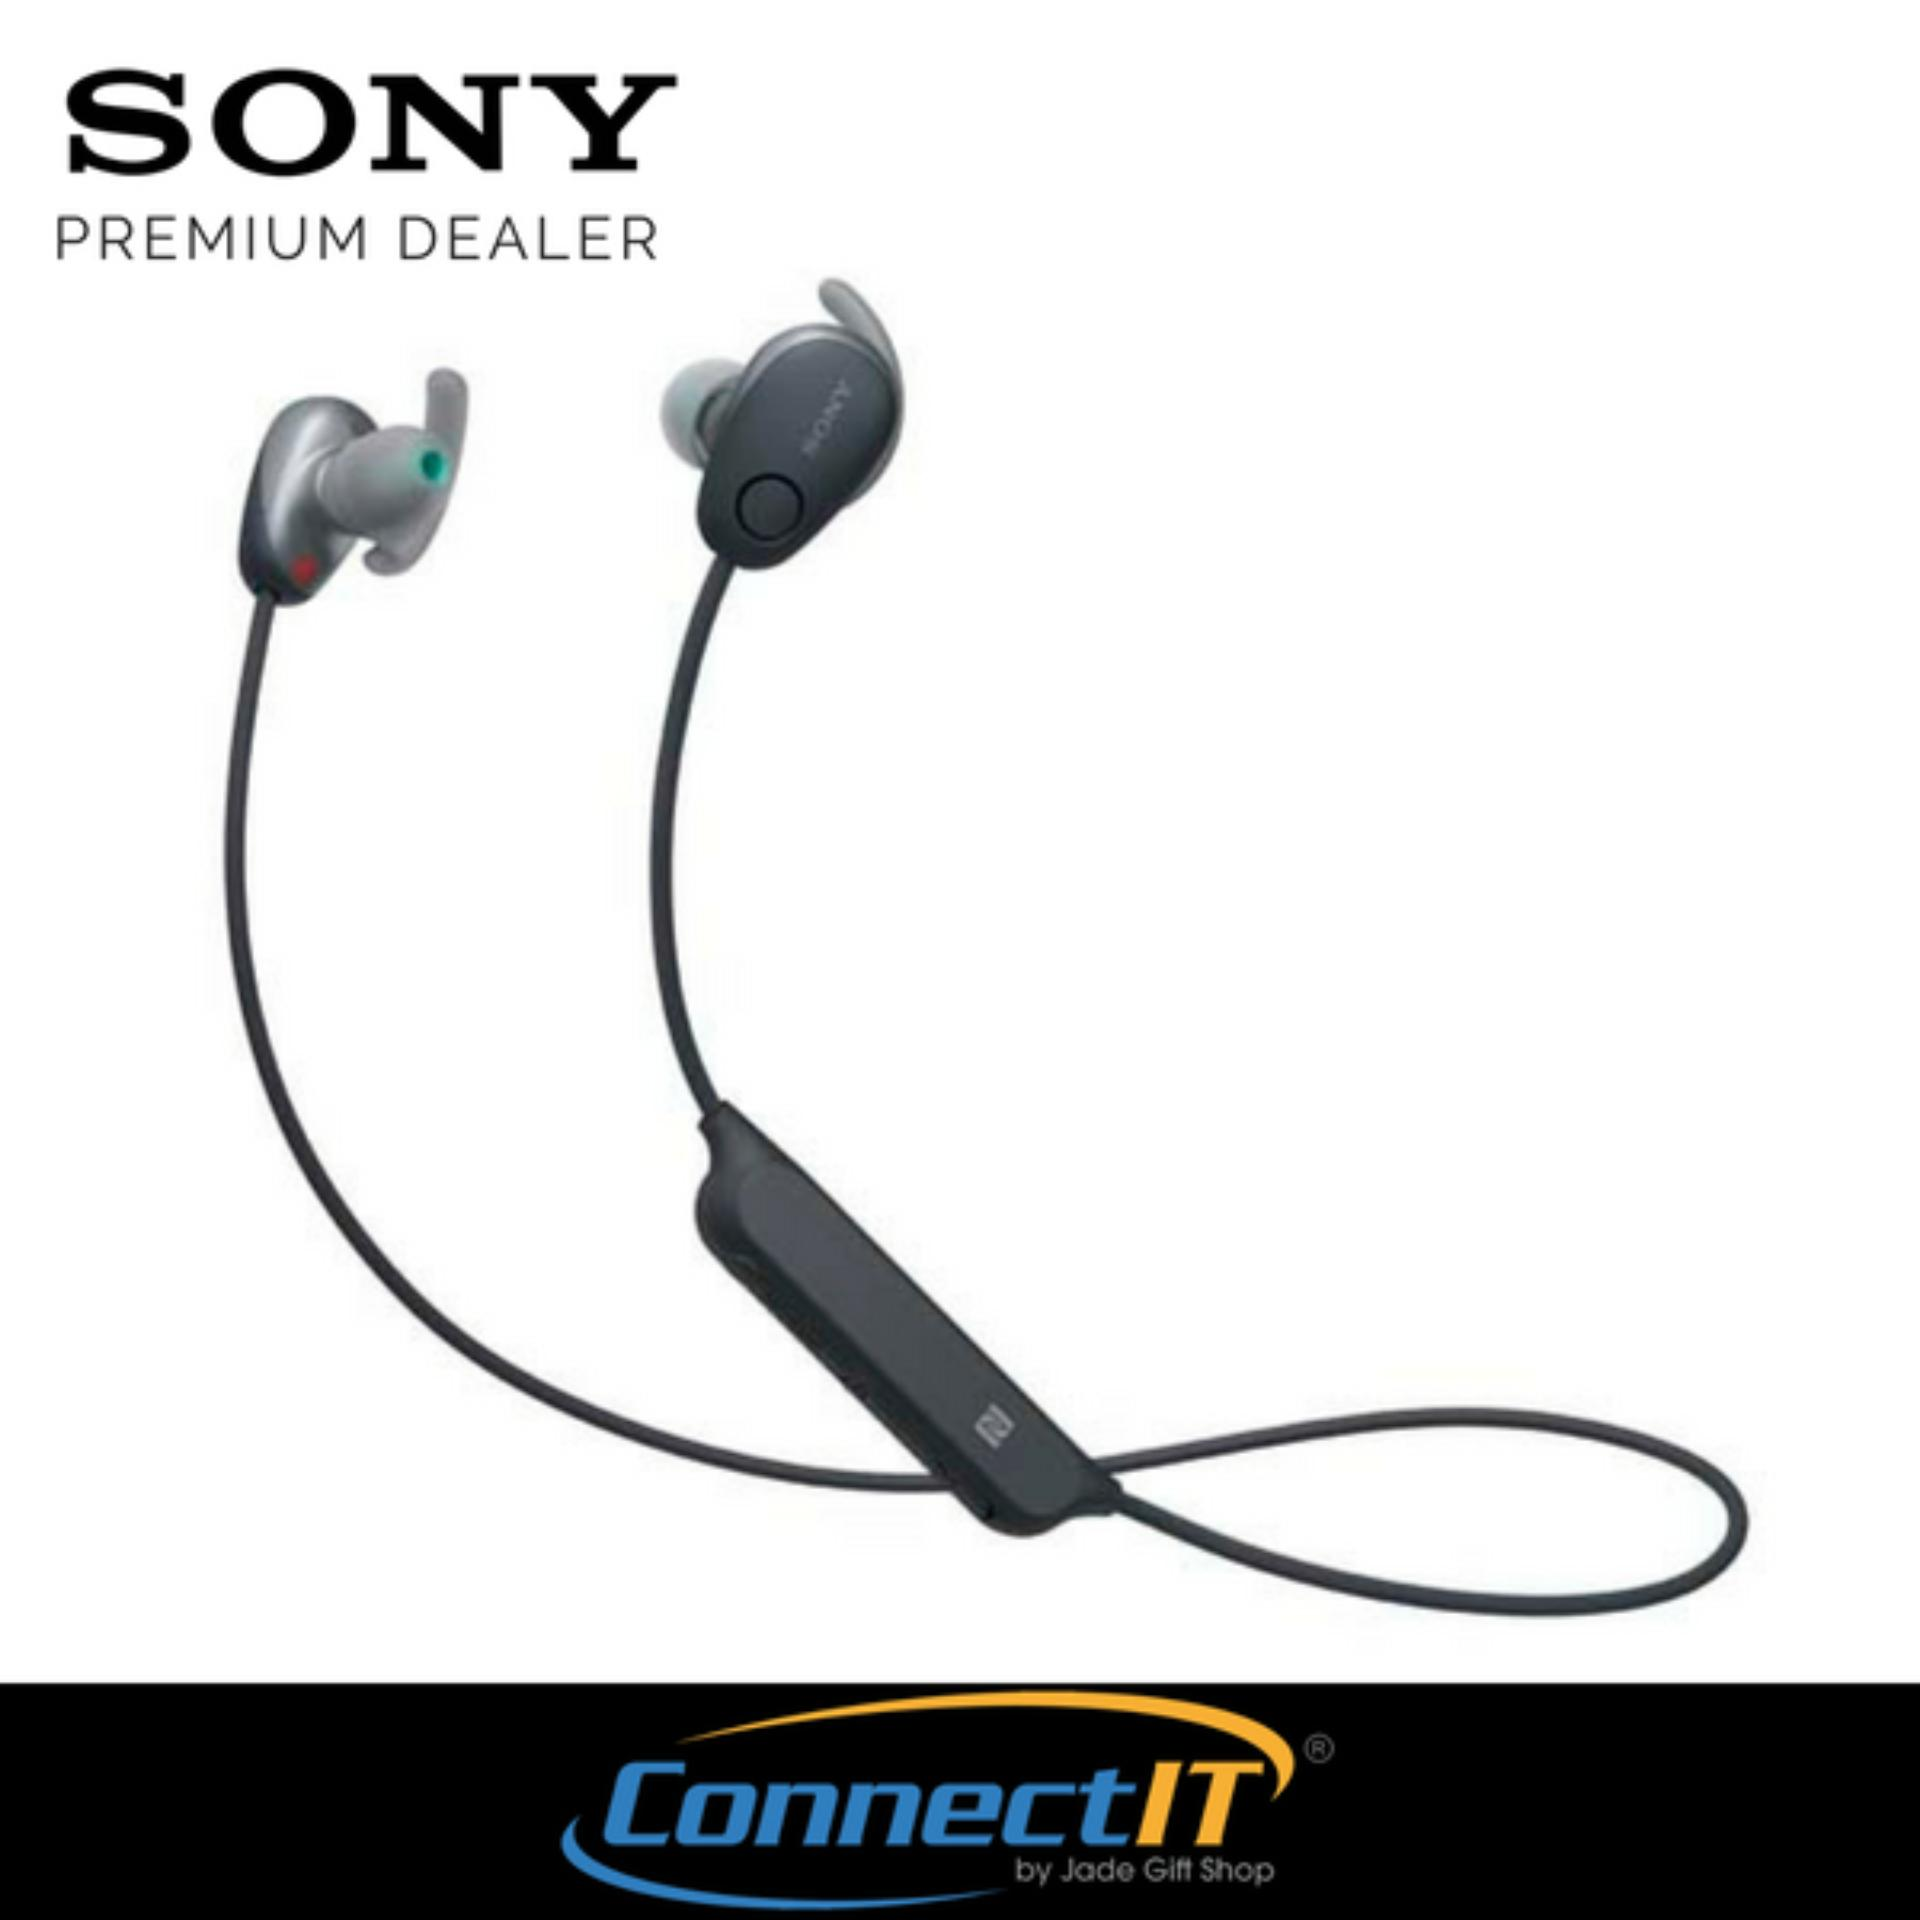 Sony Bluetooth Headphones Over Ear Sport Price In Singapore Earphone Xb80bs Extra Bass Sports Wi Sp600n Wireless Noise Canceling Black